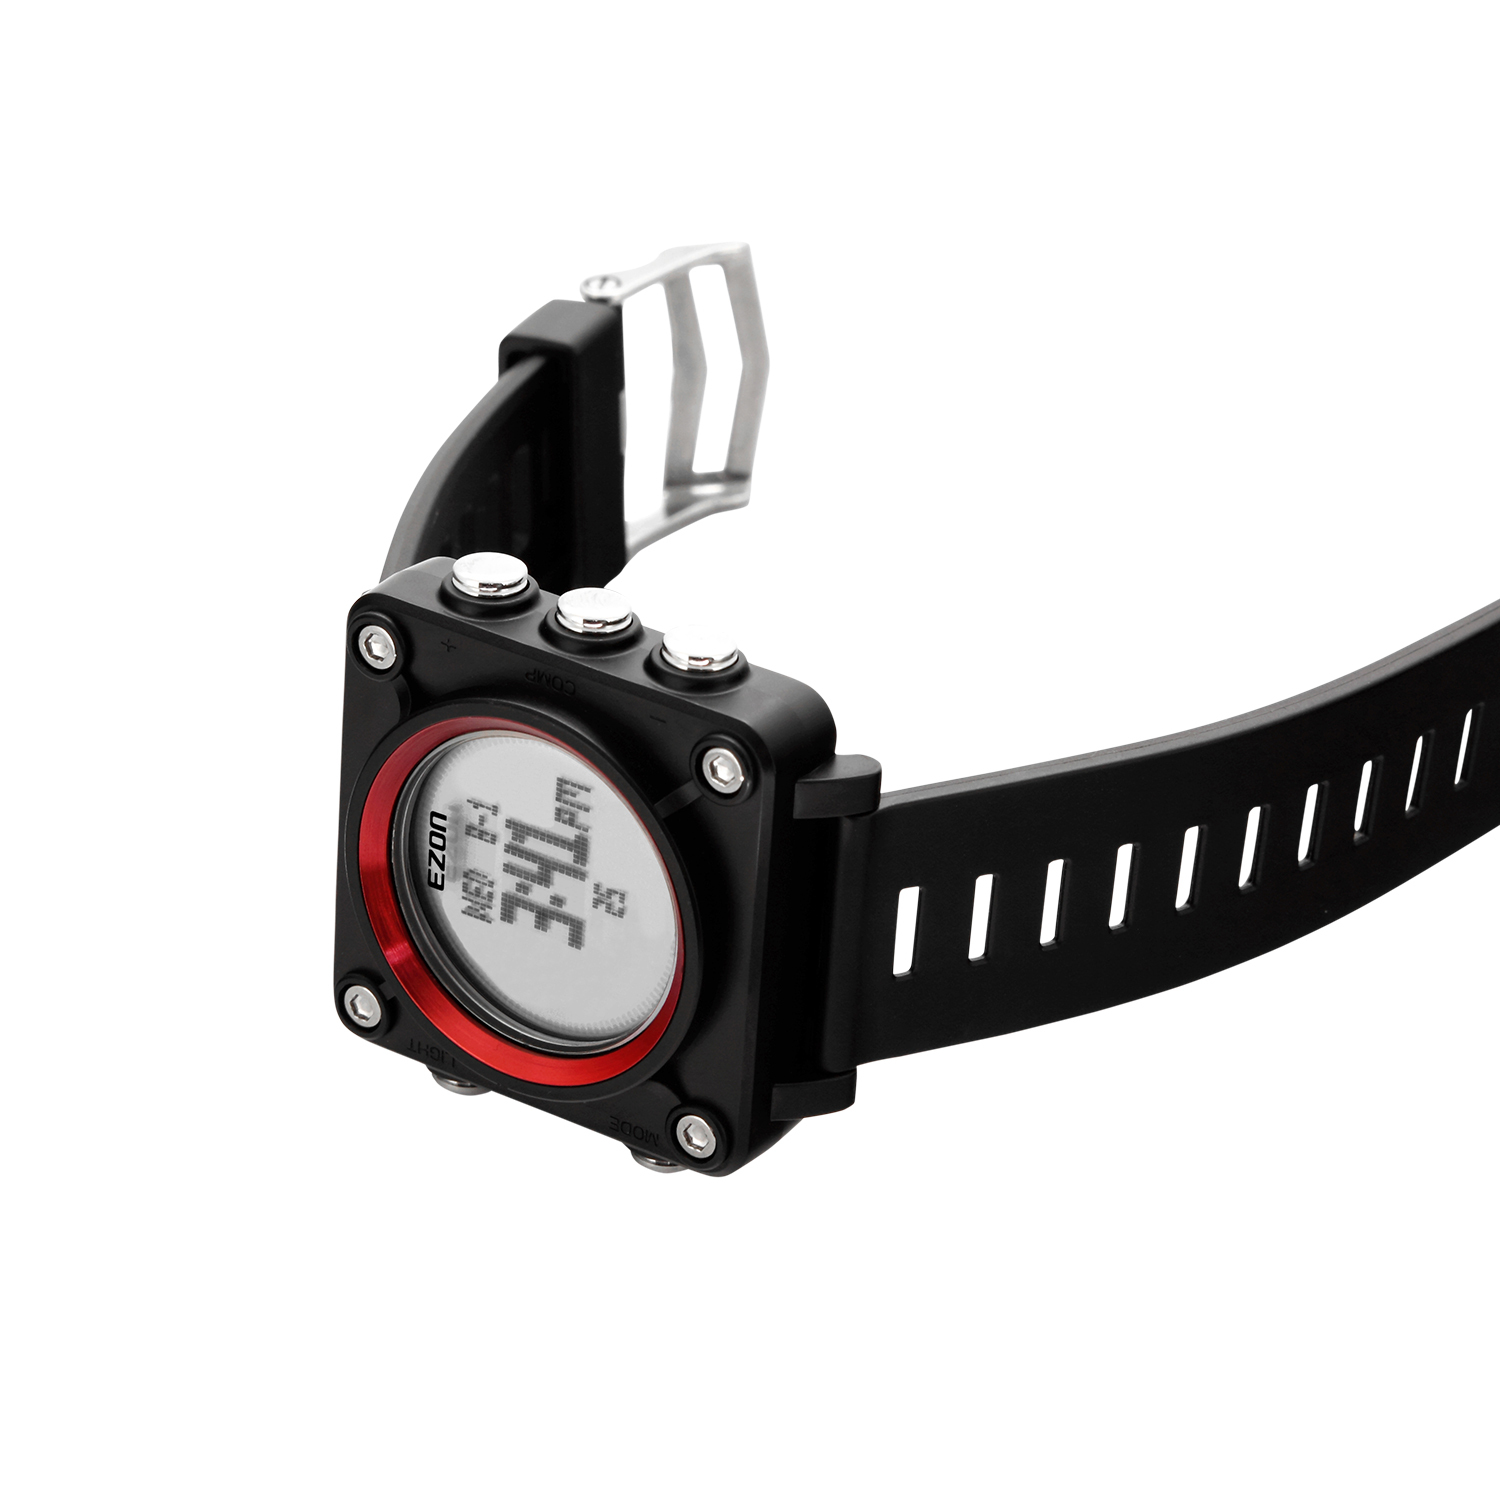 L012A12(Red) Outdoor Leisure Watch with Alarm, Stopwatch